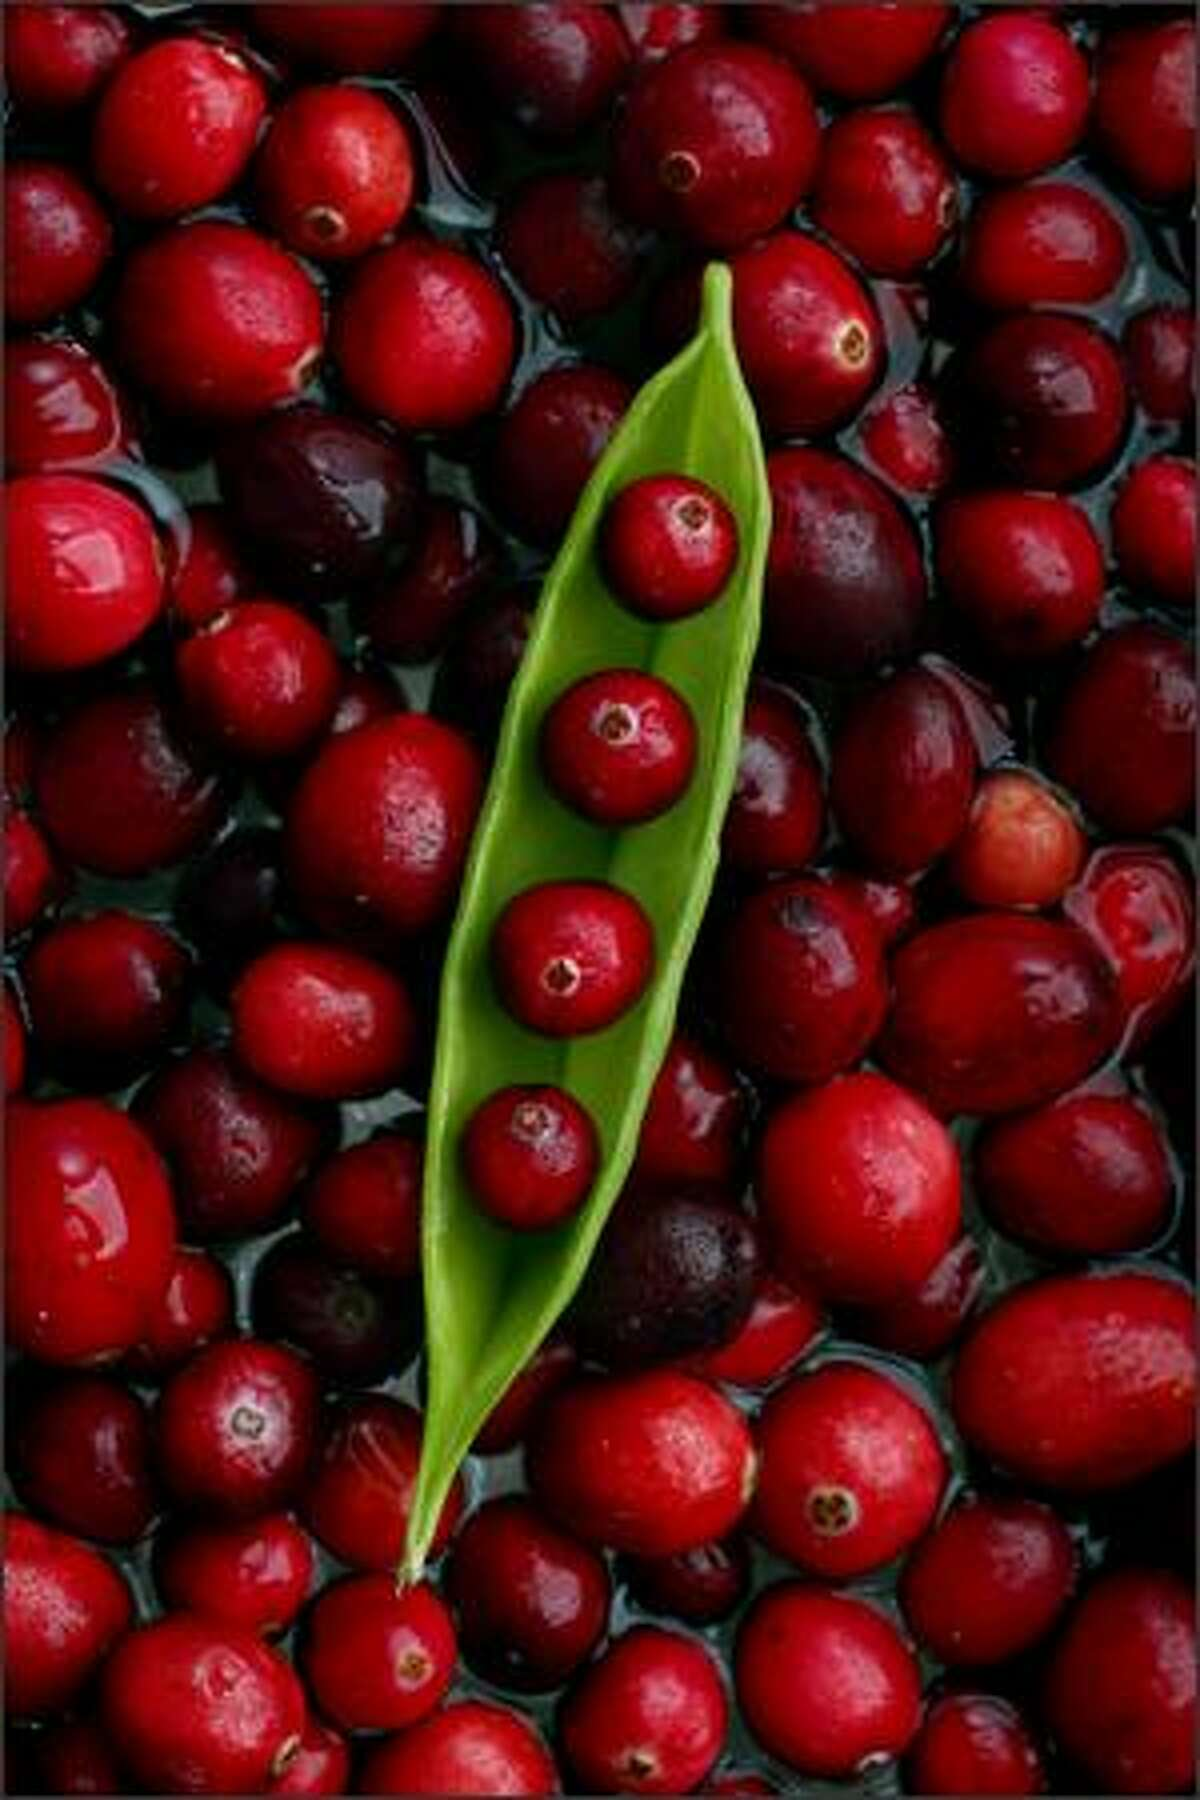 Cranberries can form the basis of cocktails, sauces or the essence of a sorbet.Rogers: I wanted to take a simple food portrait and add an unexpected twist. The pea pod idea occurred to me after I spied the peas while stocking up on cranberries for the shoot. My